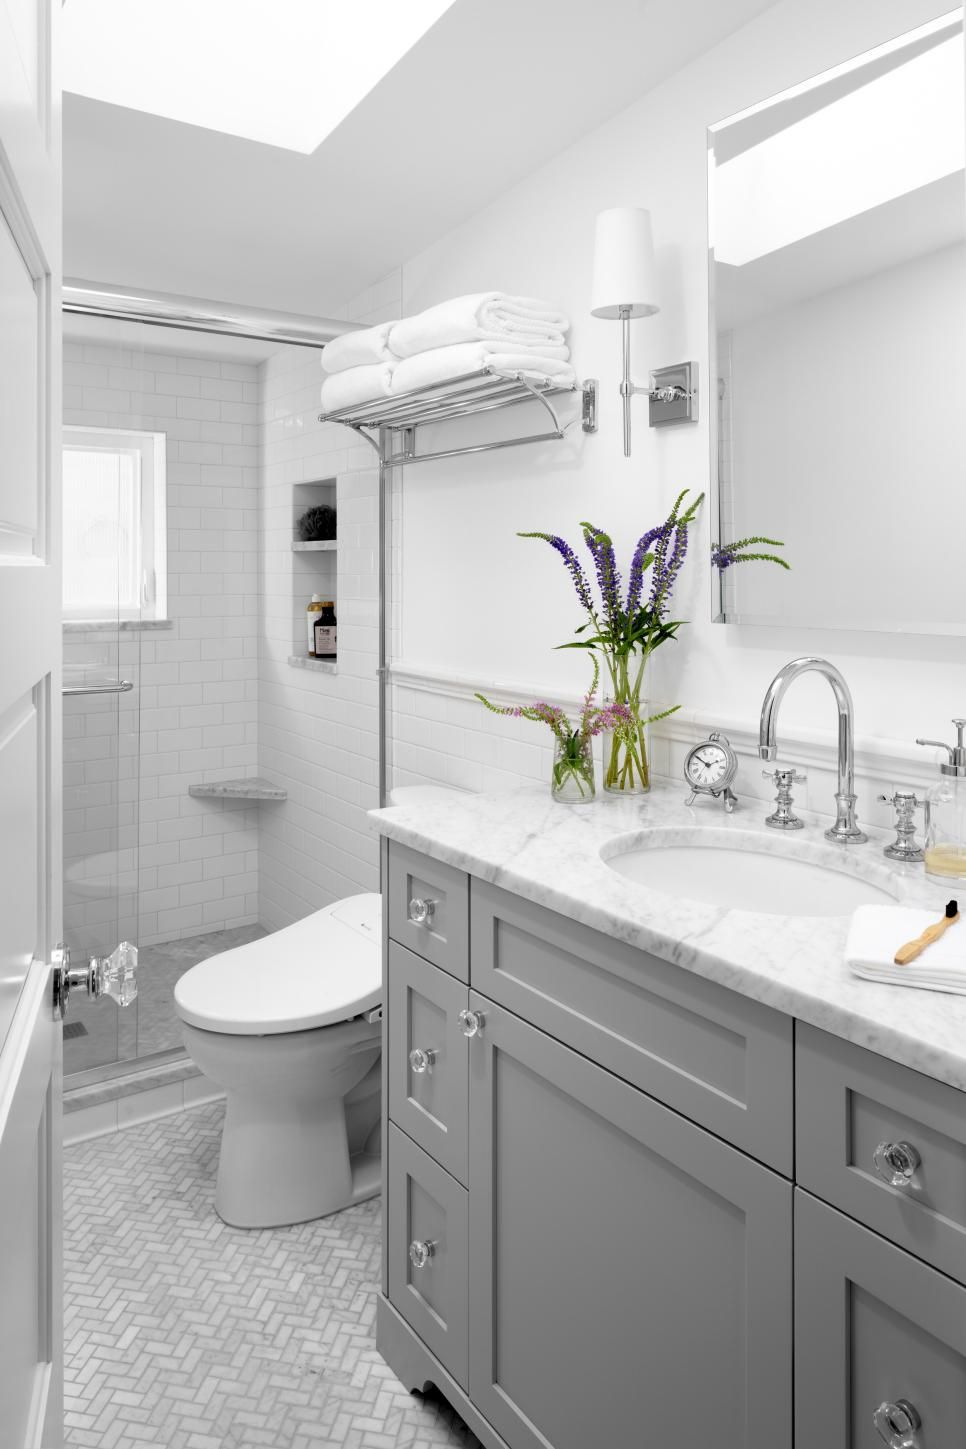 6 Design Trends This Designer Wishes Would End Hgtv Gray And White Bathroom Small Grey Bathrooms Bathroom Design Hgtv bathrooms design ideas